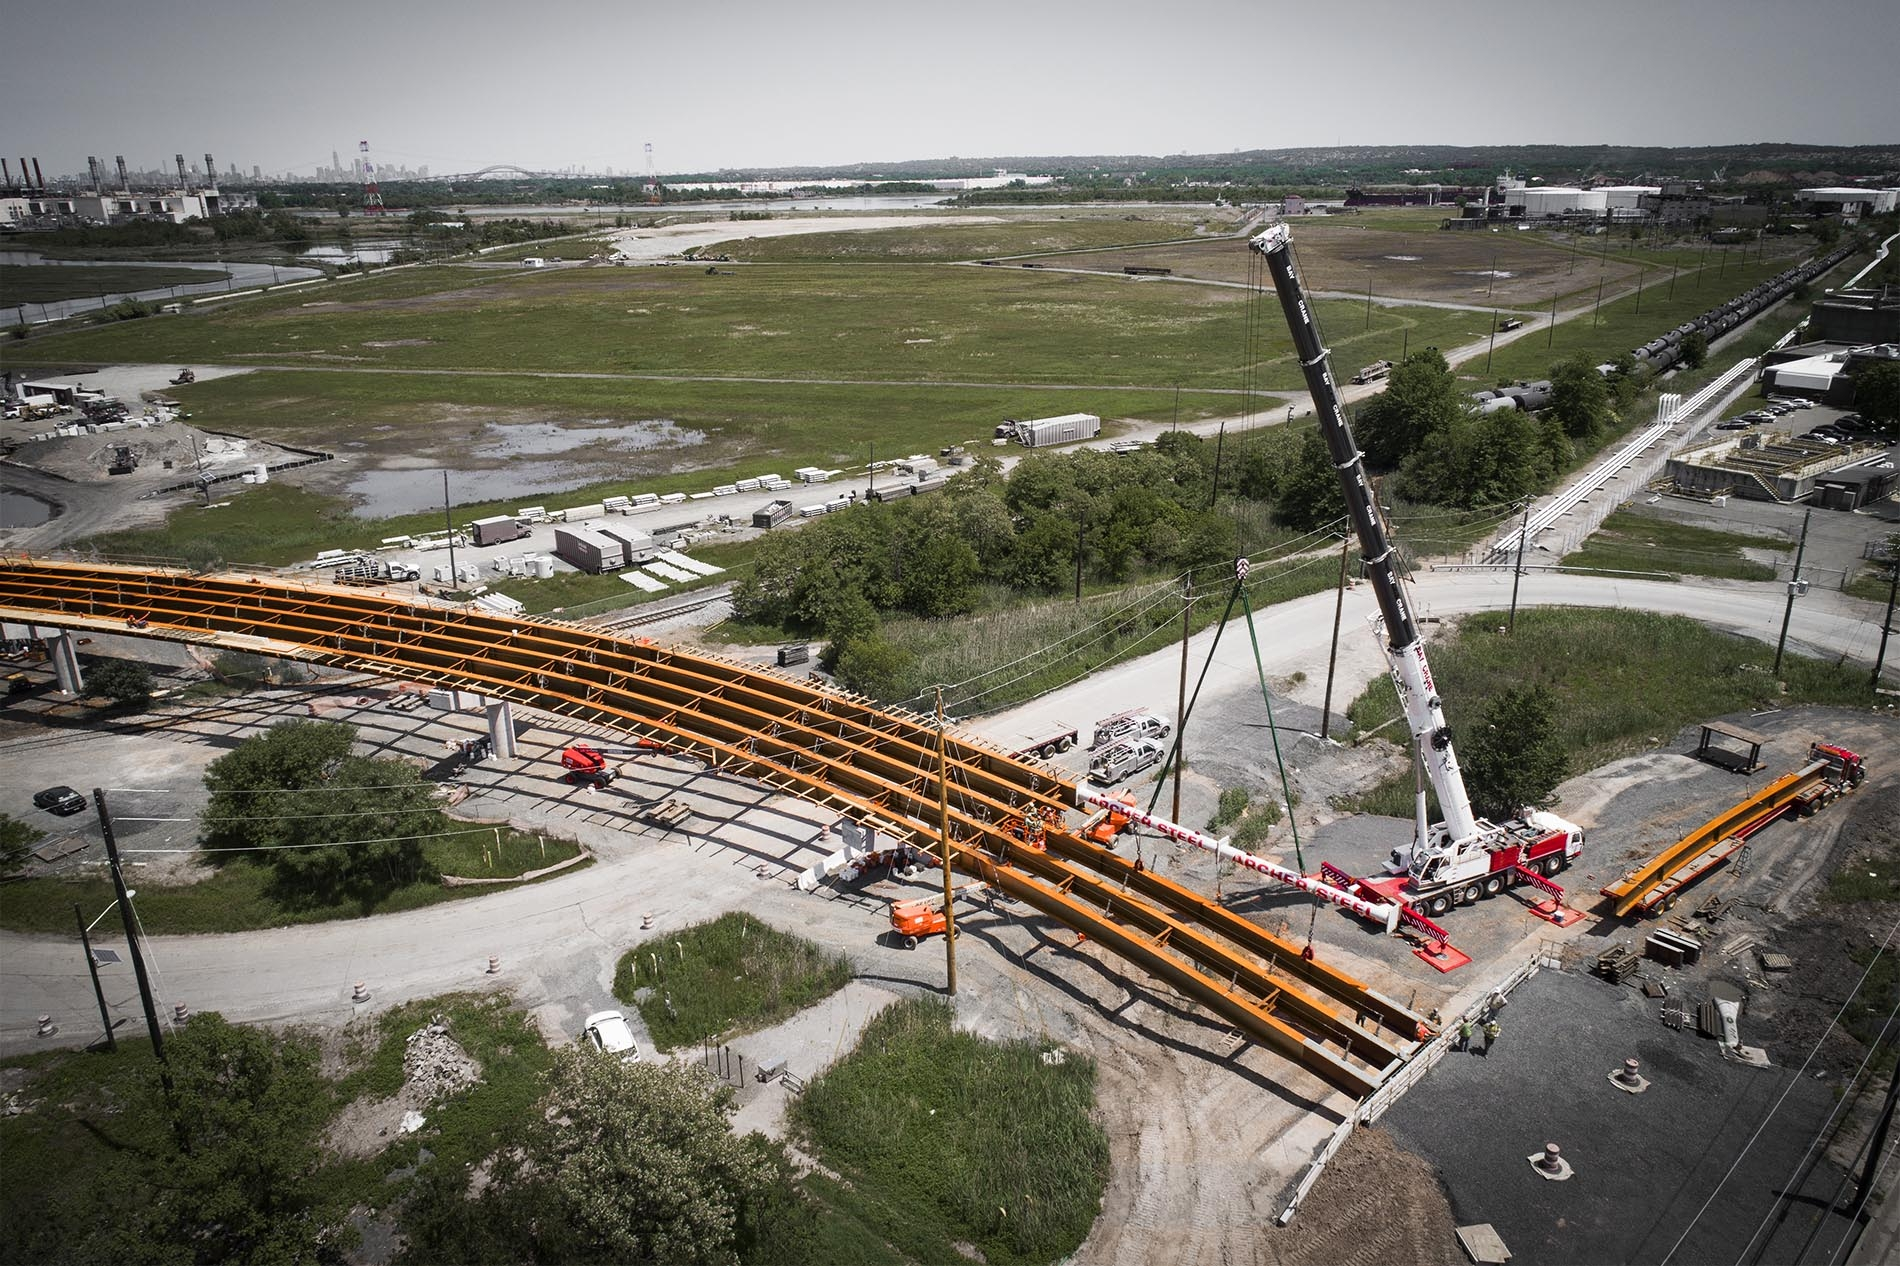 Drone Photograph of Construction Progress in LindenNJ of Grasselli Bridge